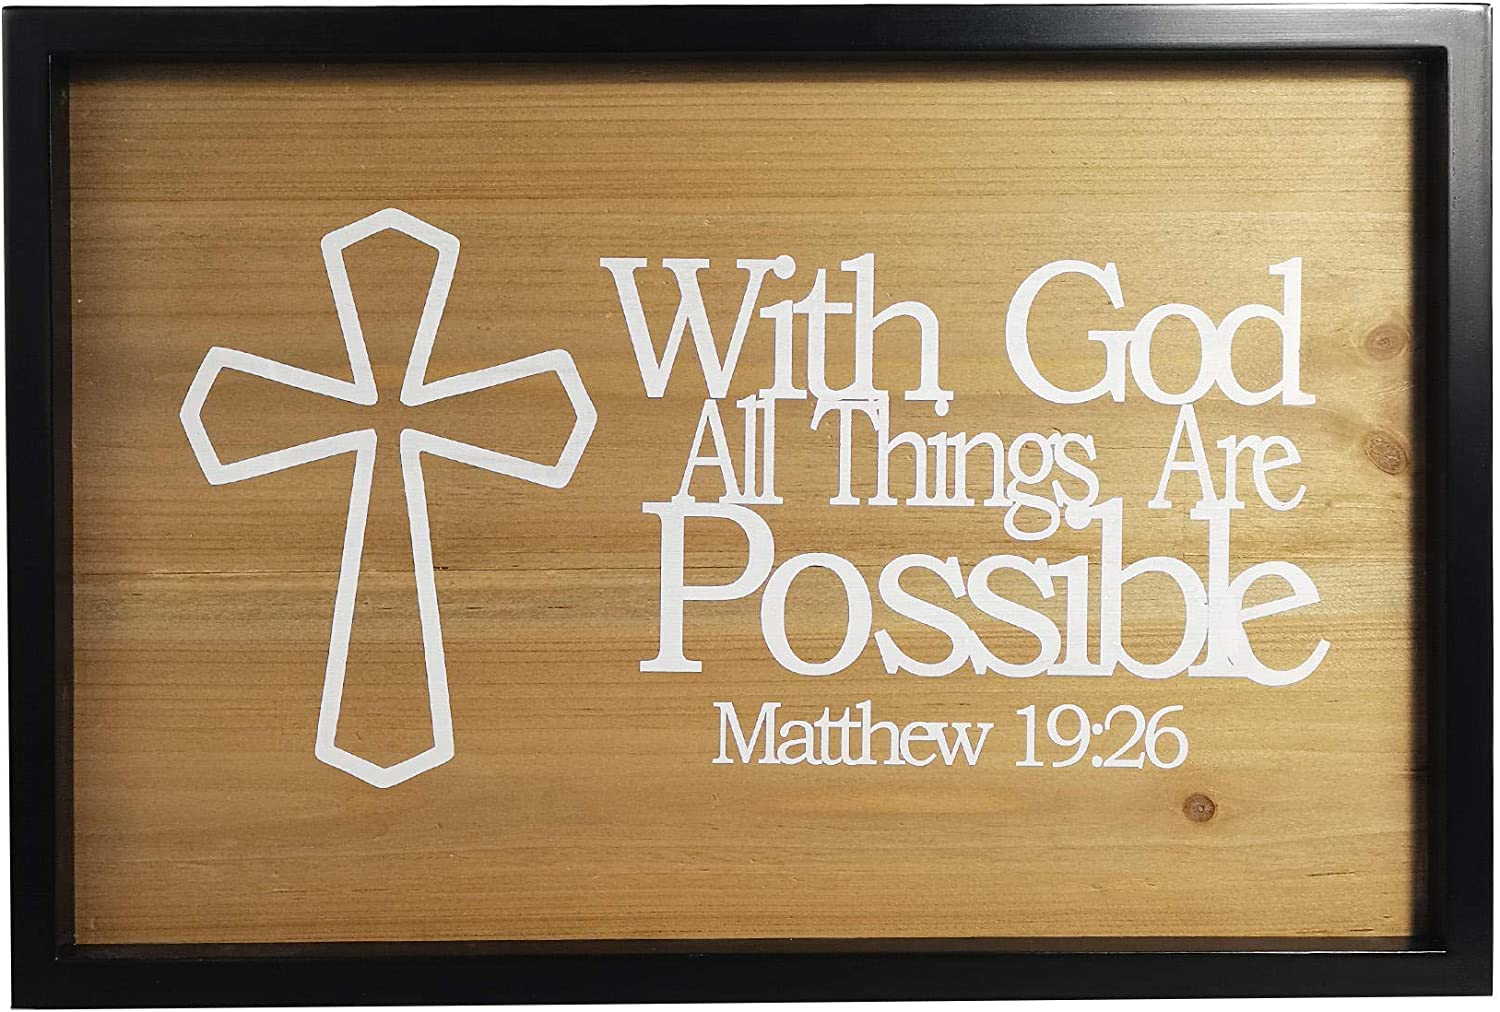 Inspirational Word Art, Christian Faith Biblical Verse Wall Sign, Hand-Made Wooden Decoration Plaque for Home, Office, Church – Real Wood – – 12x17 (with God All Things are Possible.)